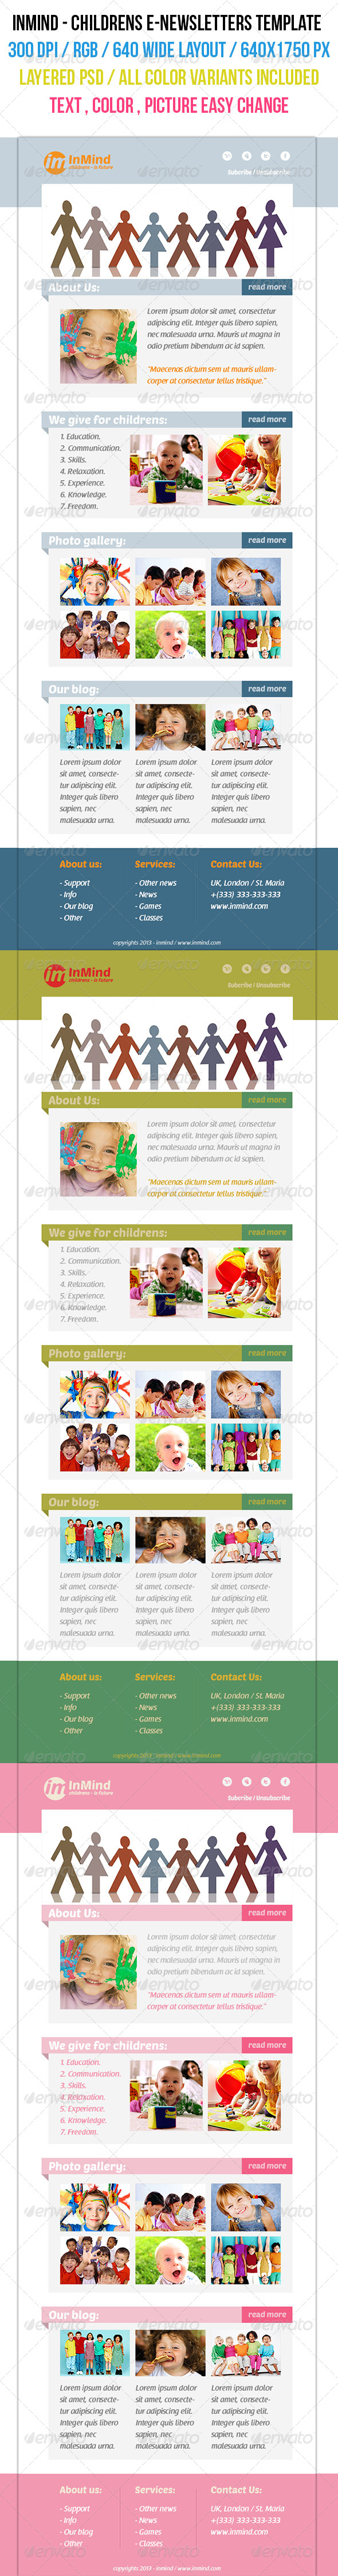 GraphicRiver InMind Children s E-newsletters template 4616865